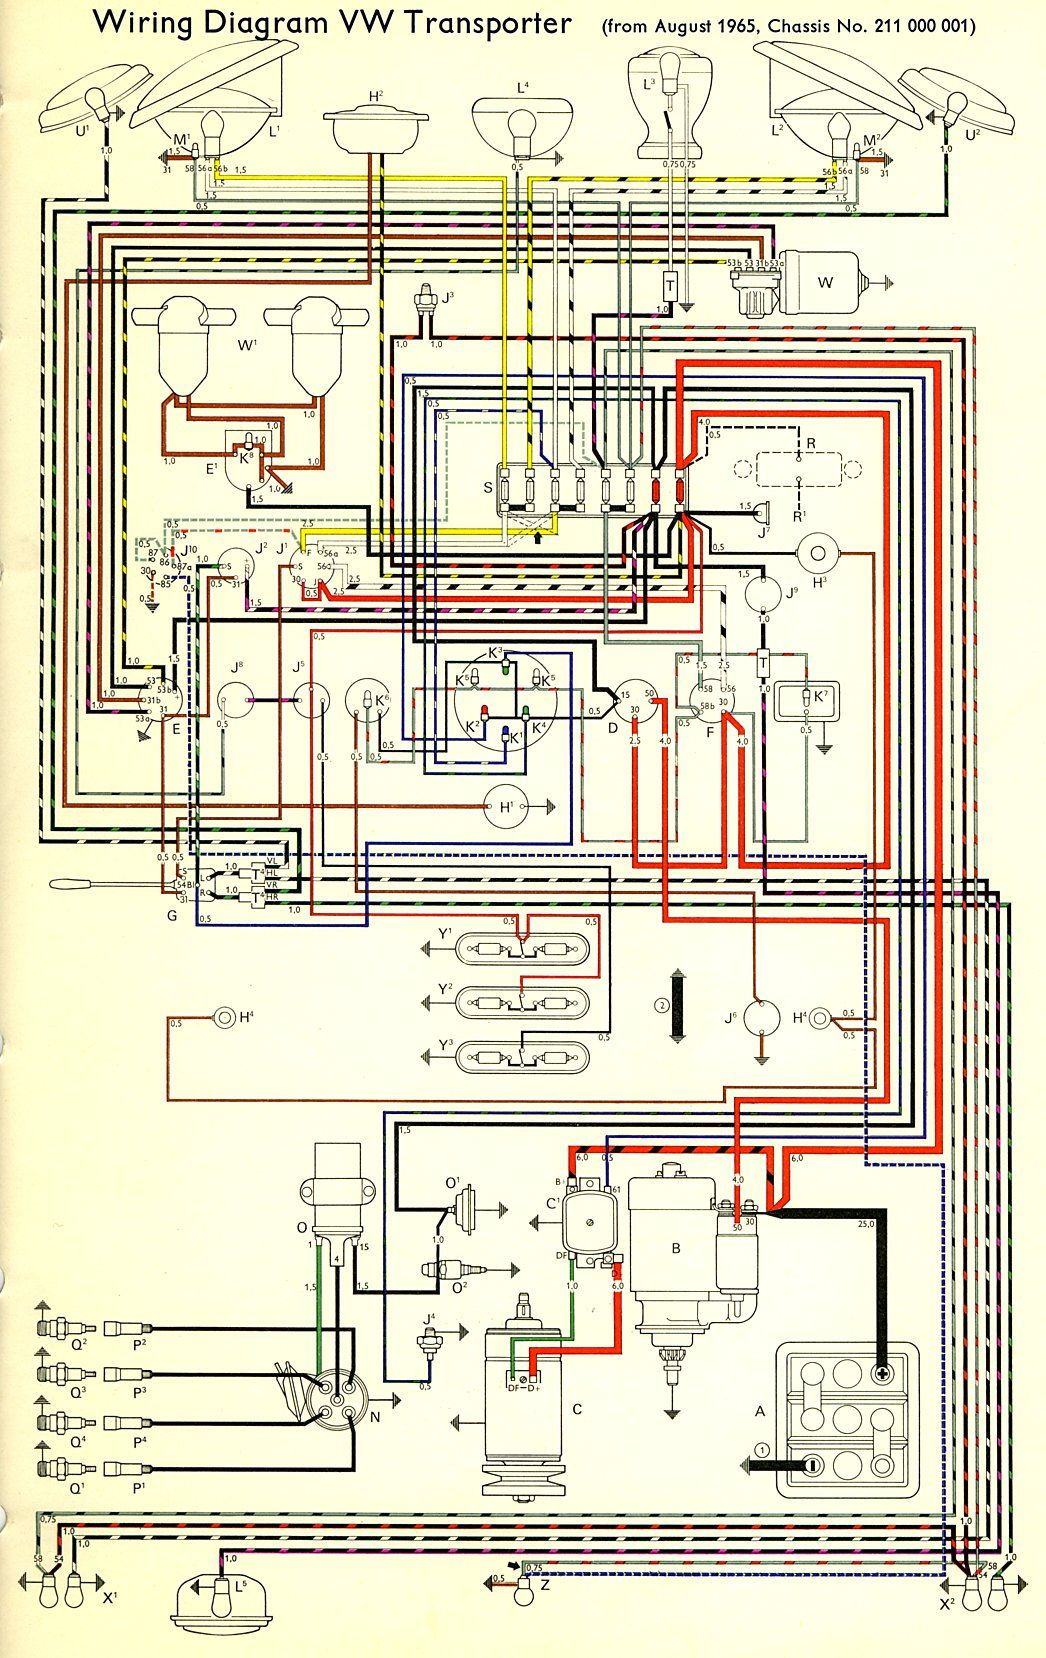 electrical wiring diagram vw t4  wiring diagram